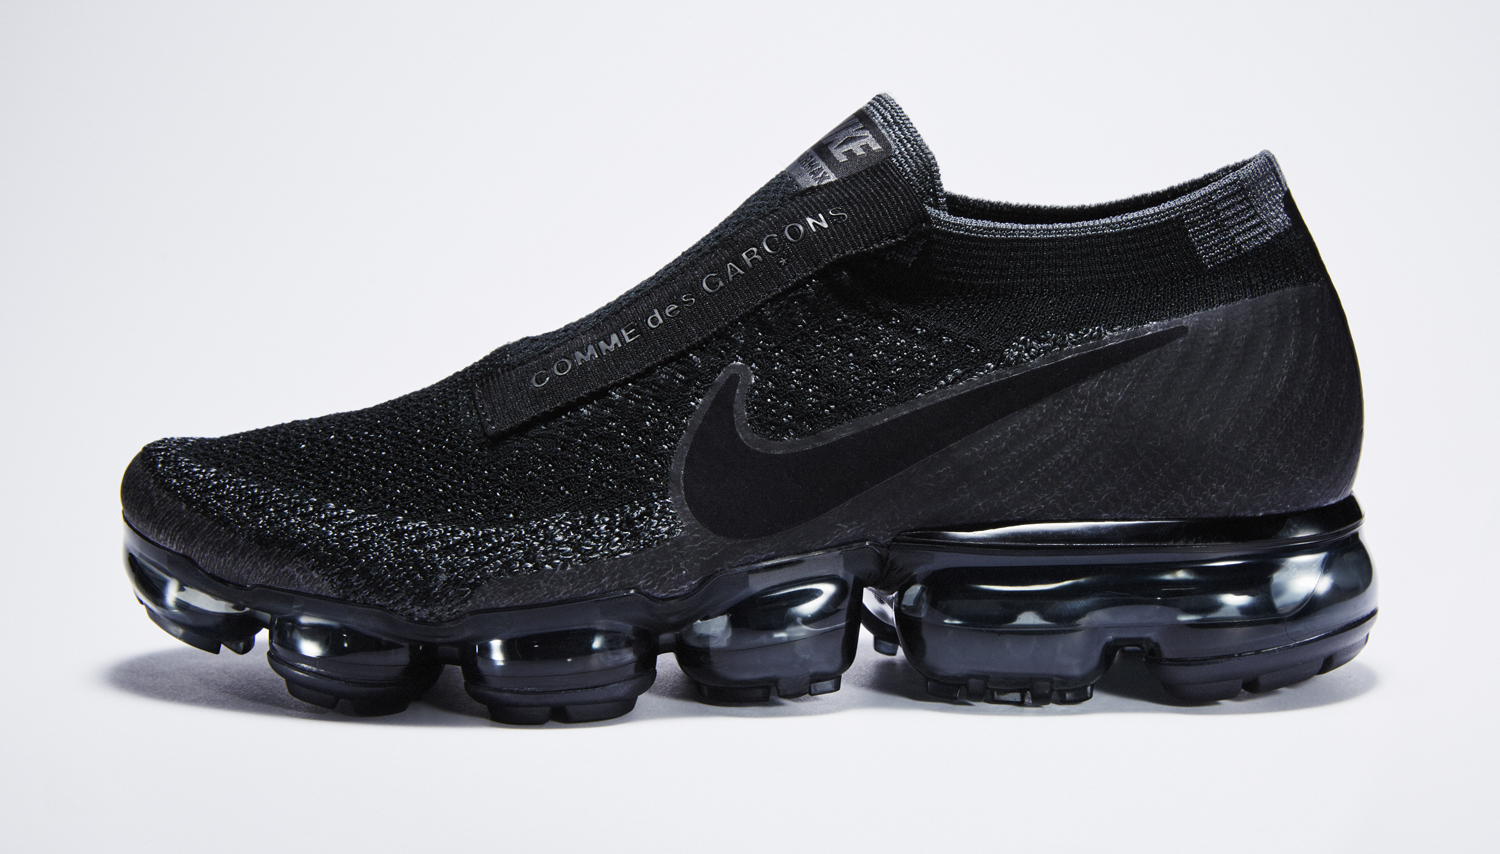 21abe4c126f7 Image via Nike Black Nike Air VaporMax Comme des Garcons Profile